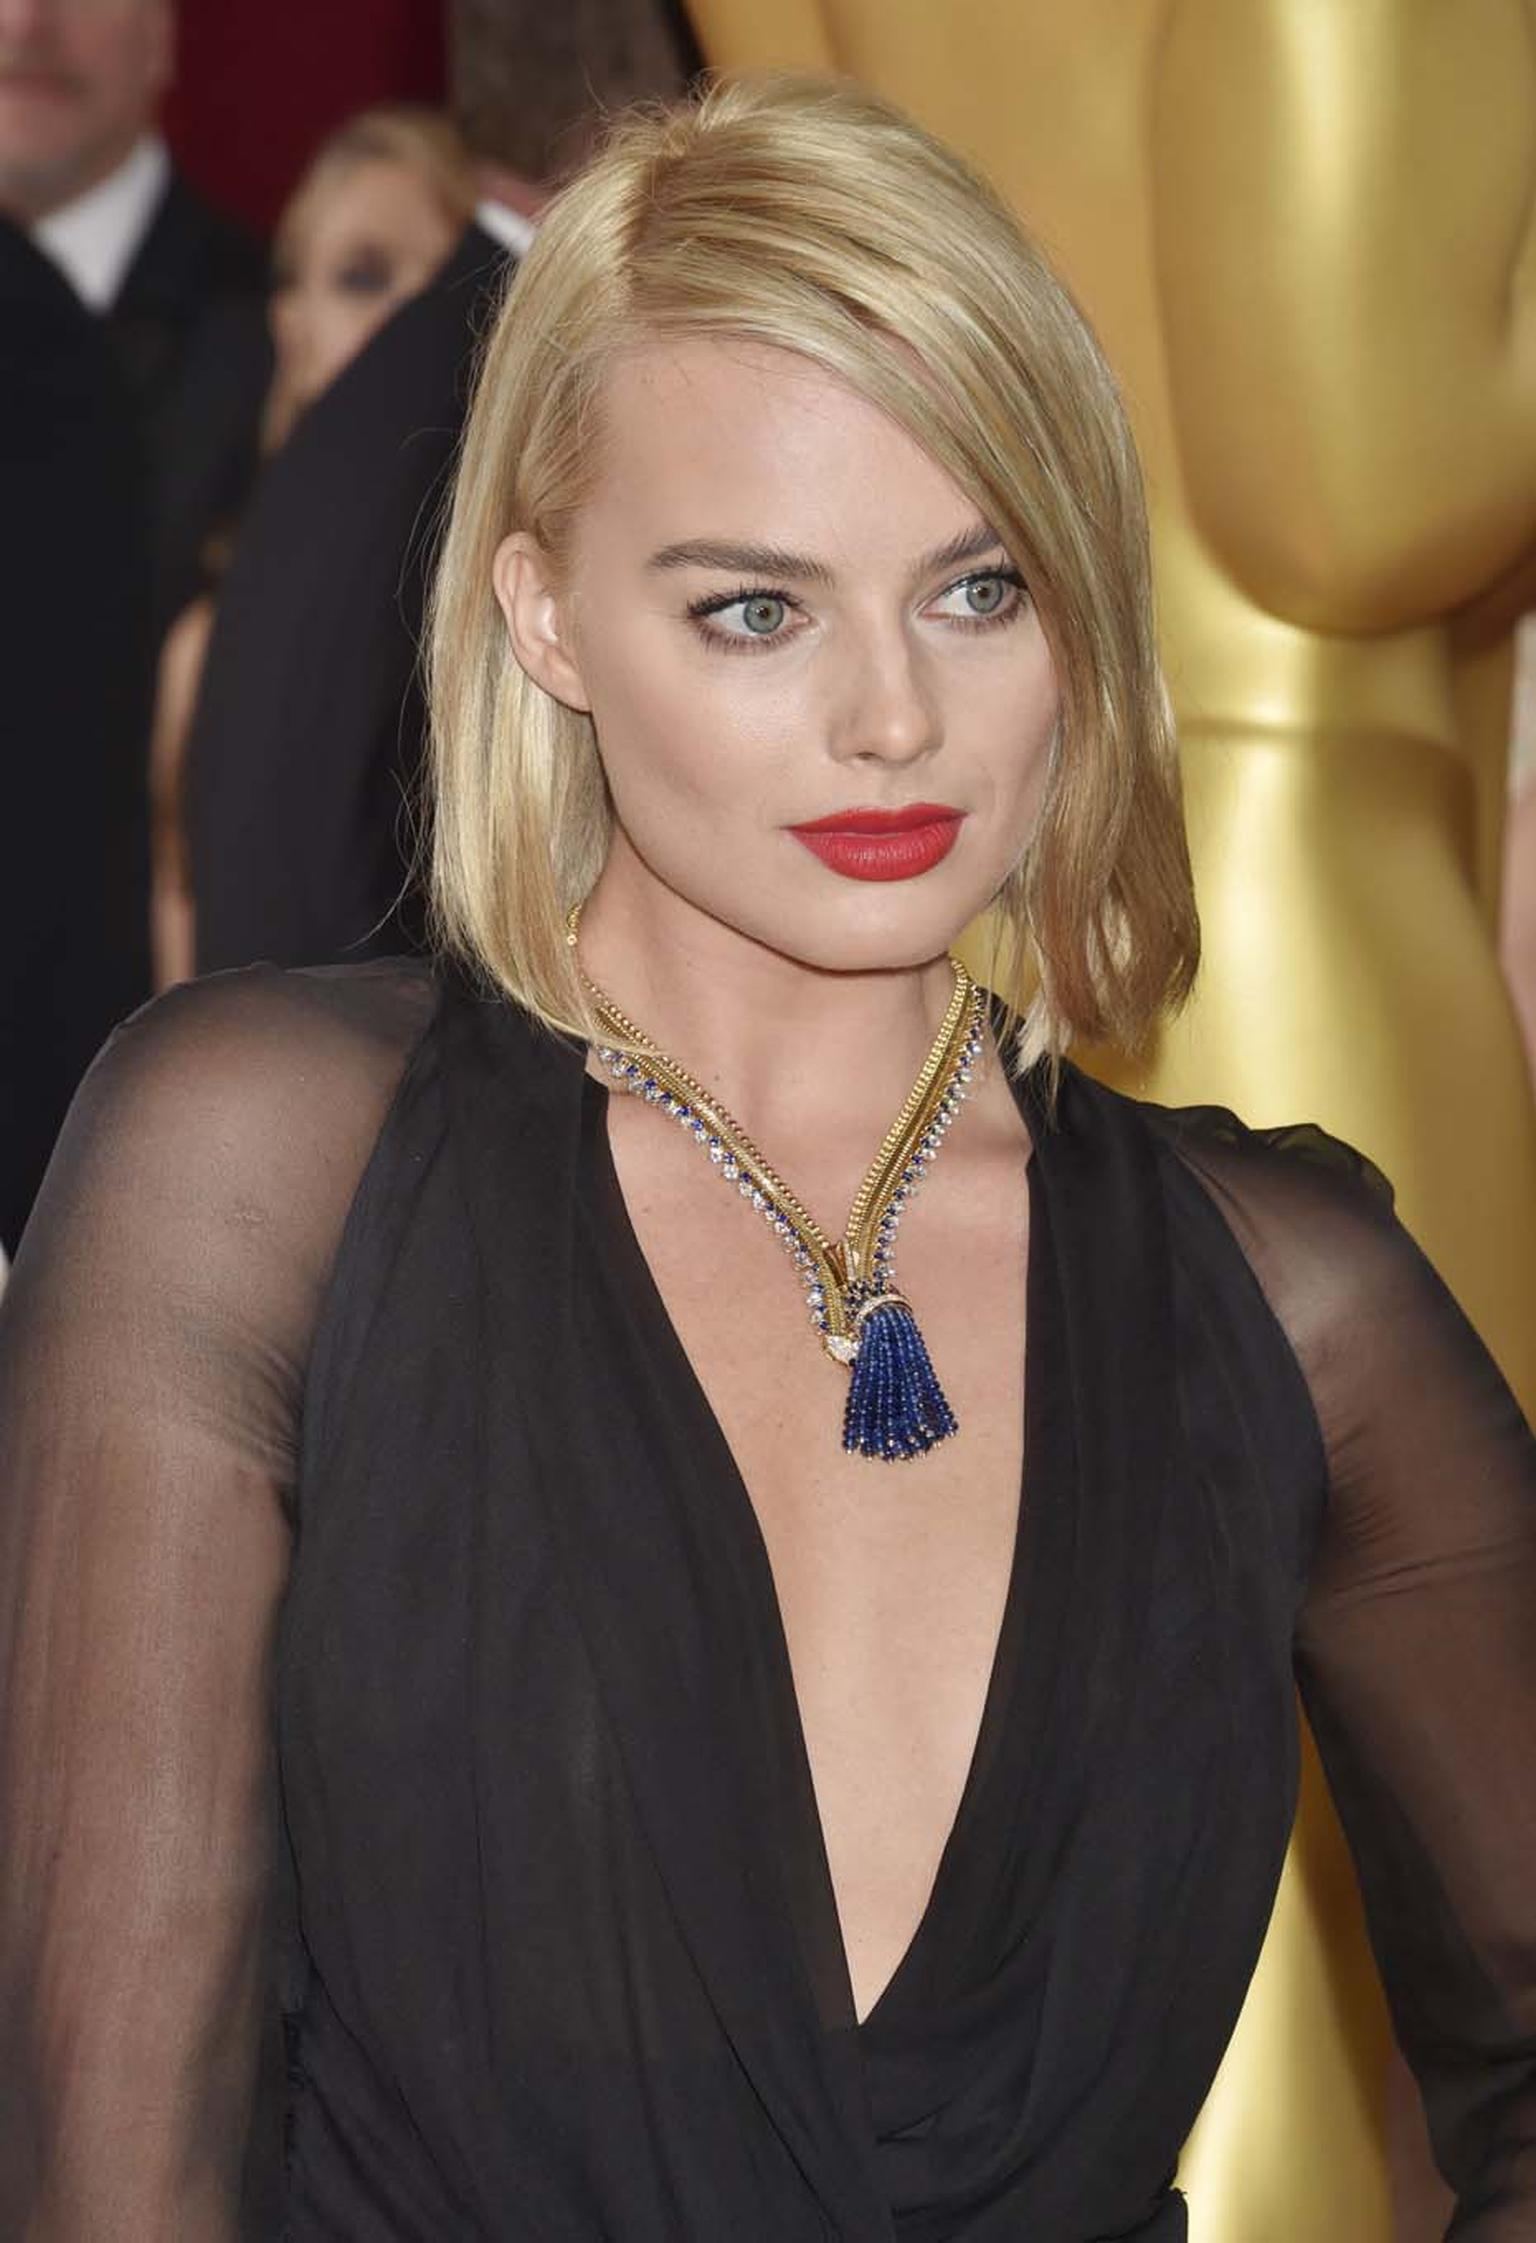 Van Cleef & Arpels Zip necklace, worn by Margot Robbie